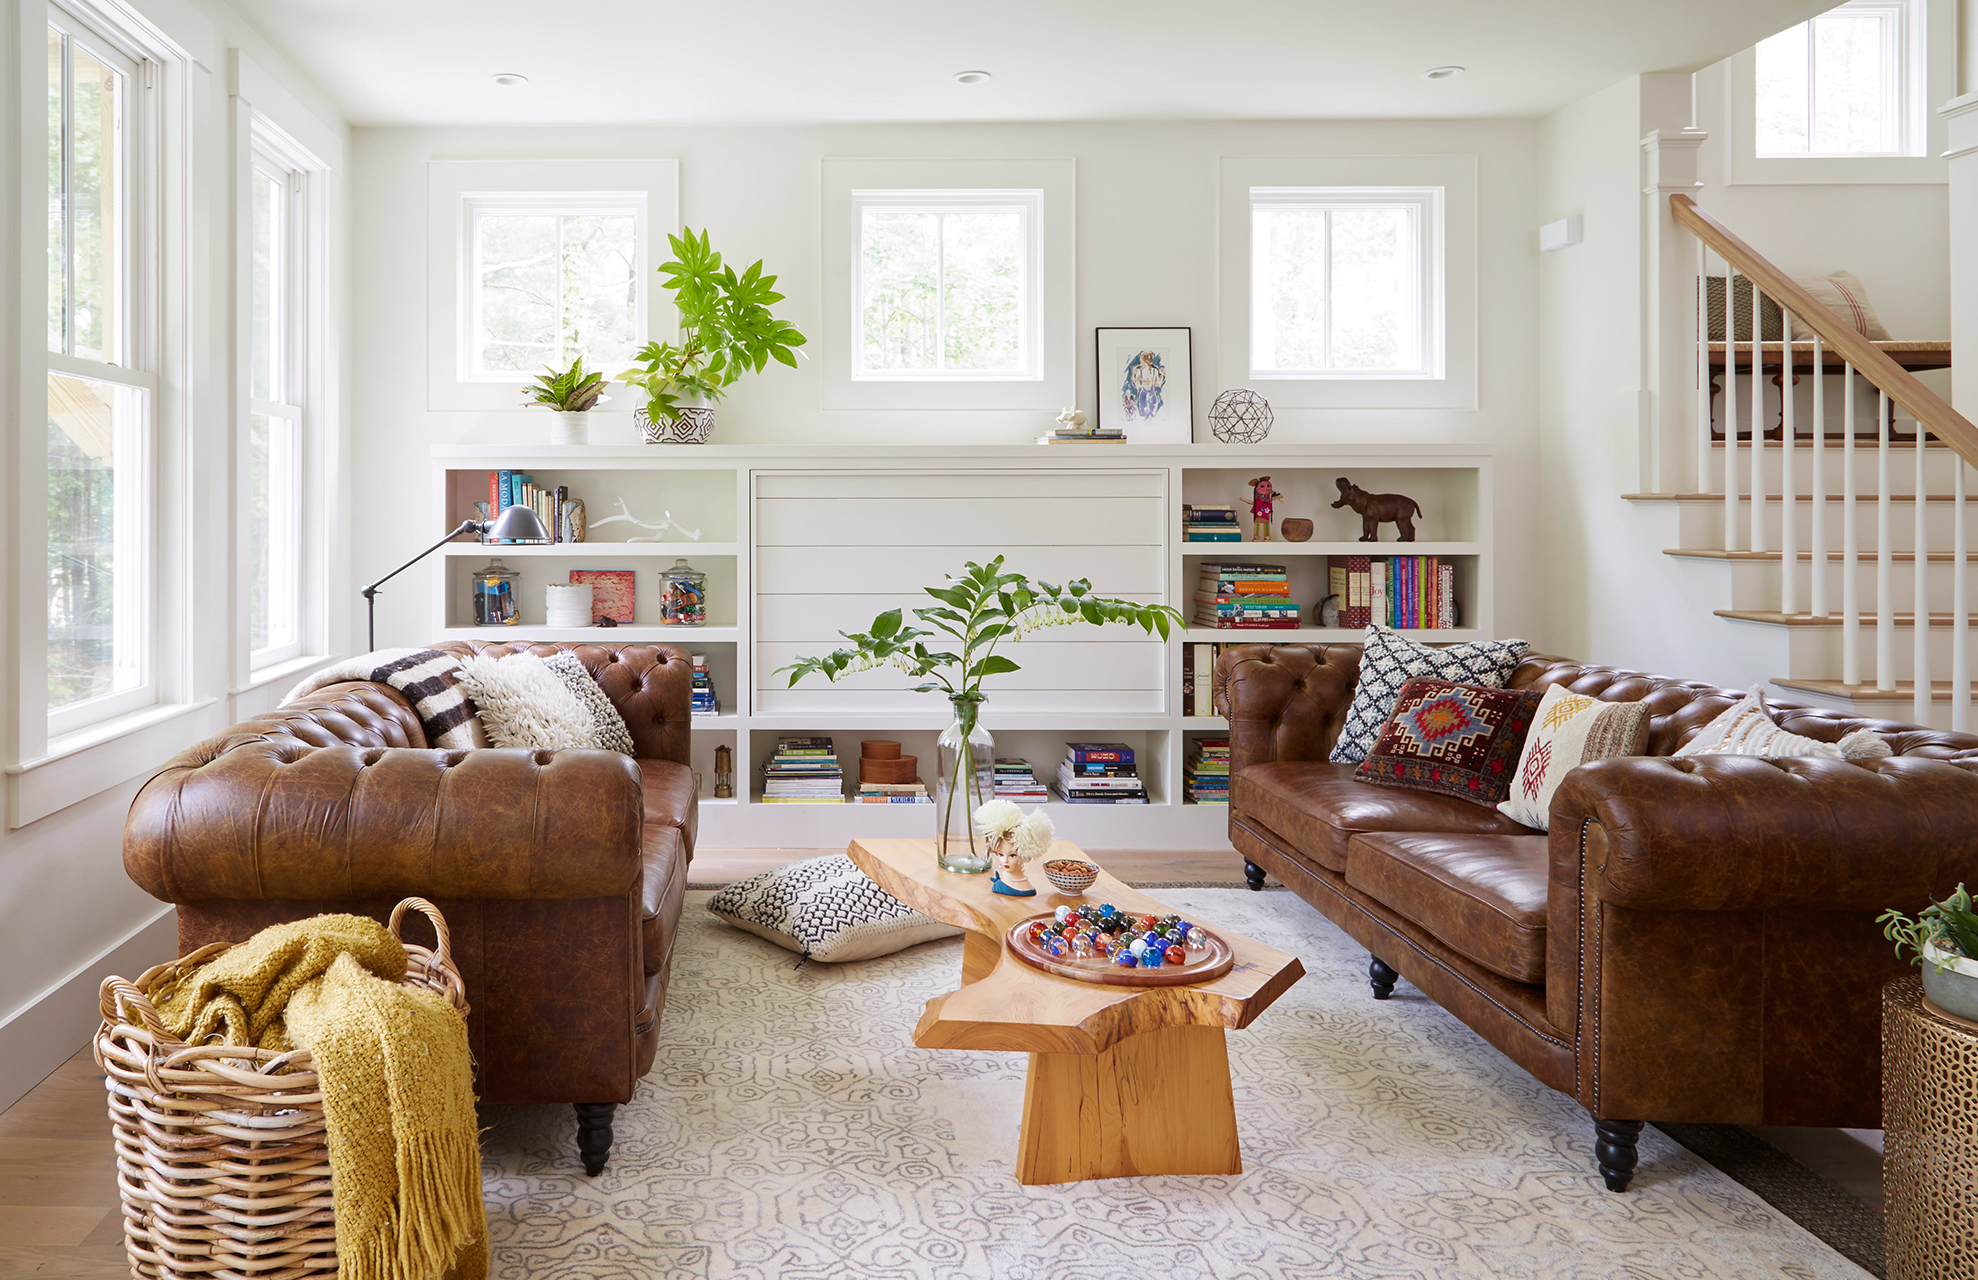 Effective Programs For Living Rooms For Adults